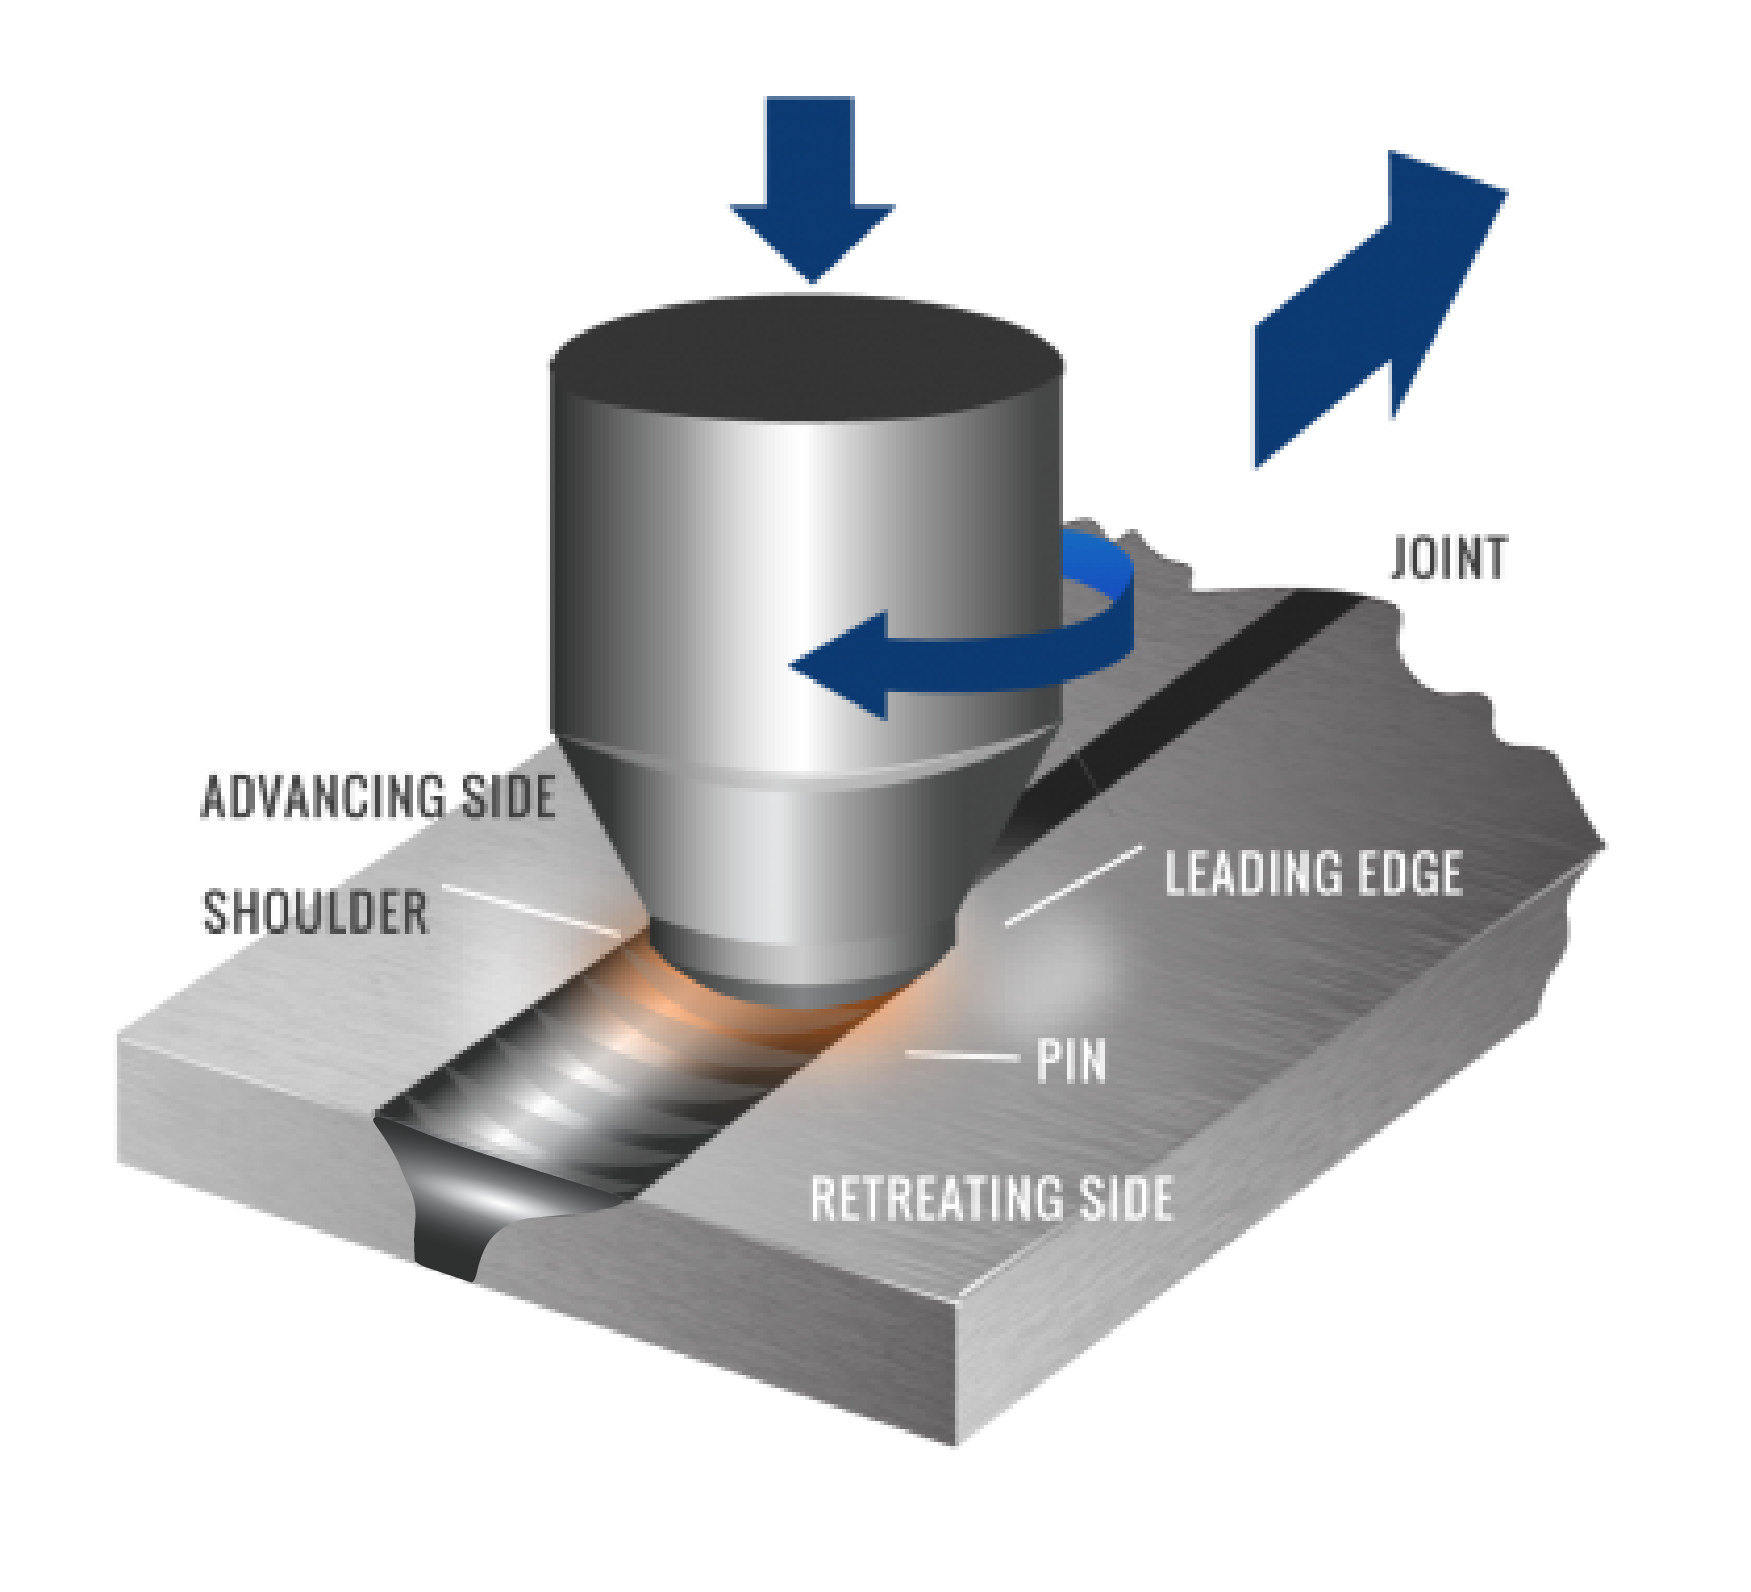 Friction Stir Welding >> Friction Stir Welding vs Traditional Welding | MegaStir